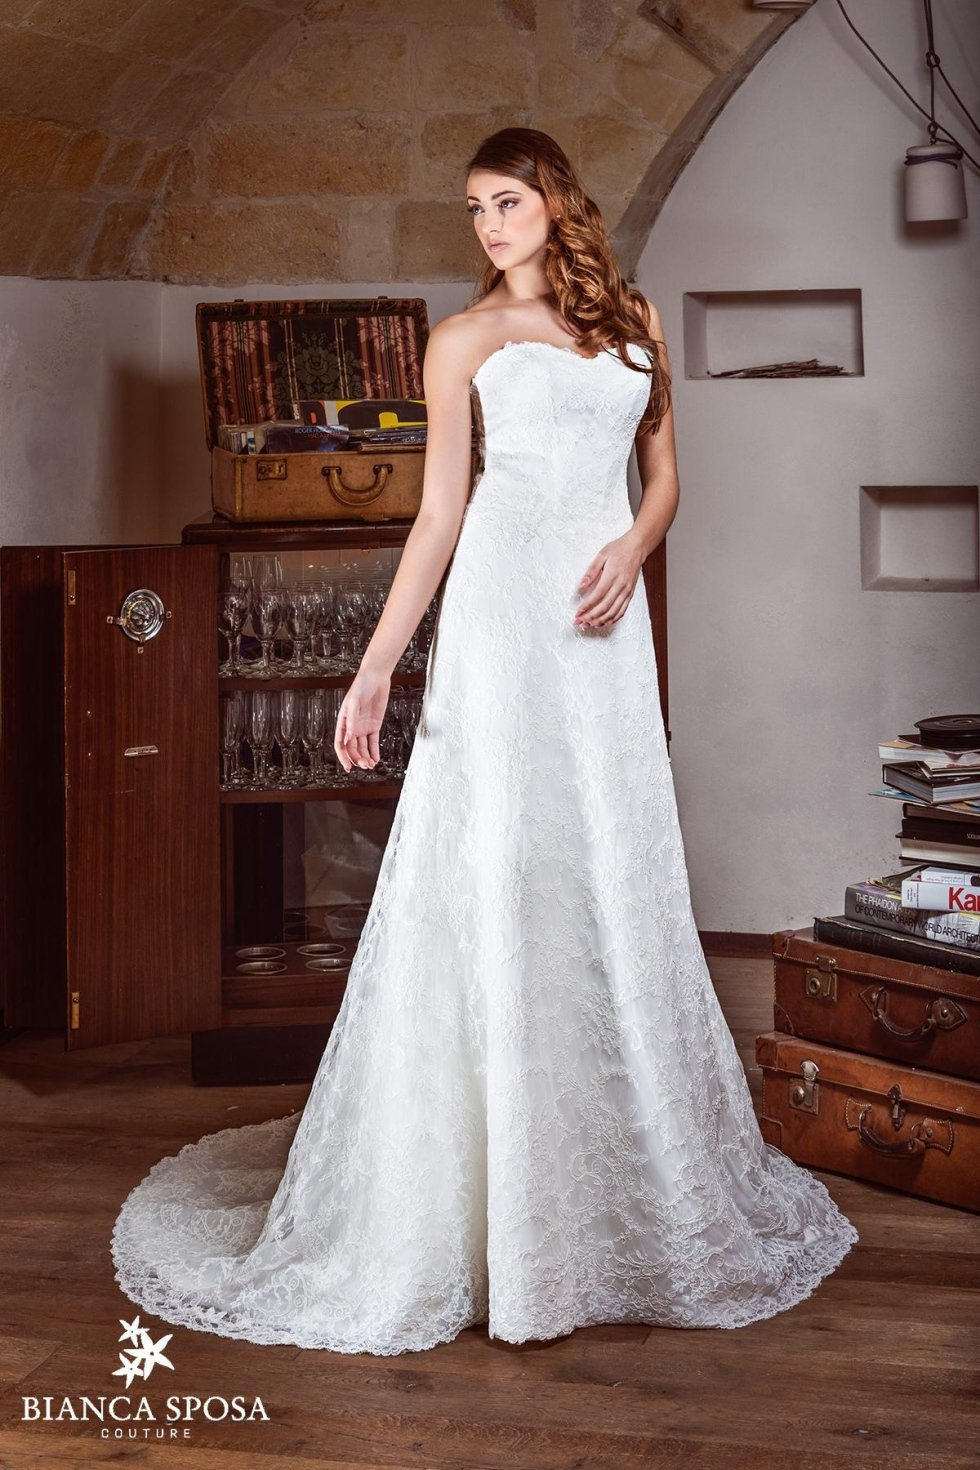 Bianca Sposa Couture